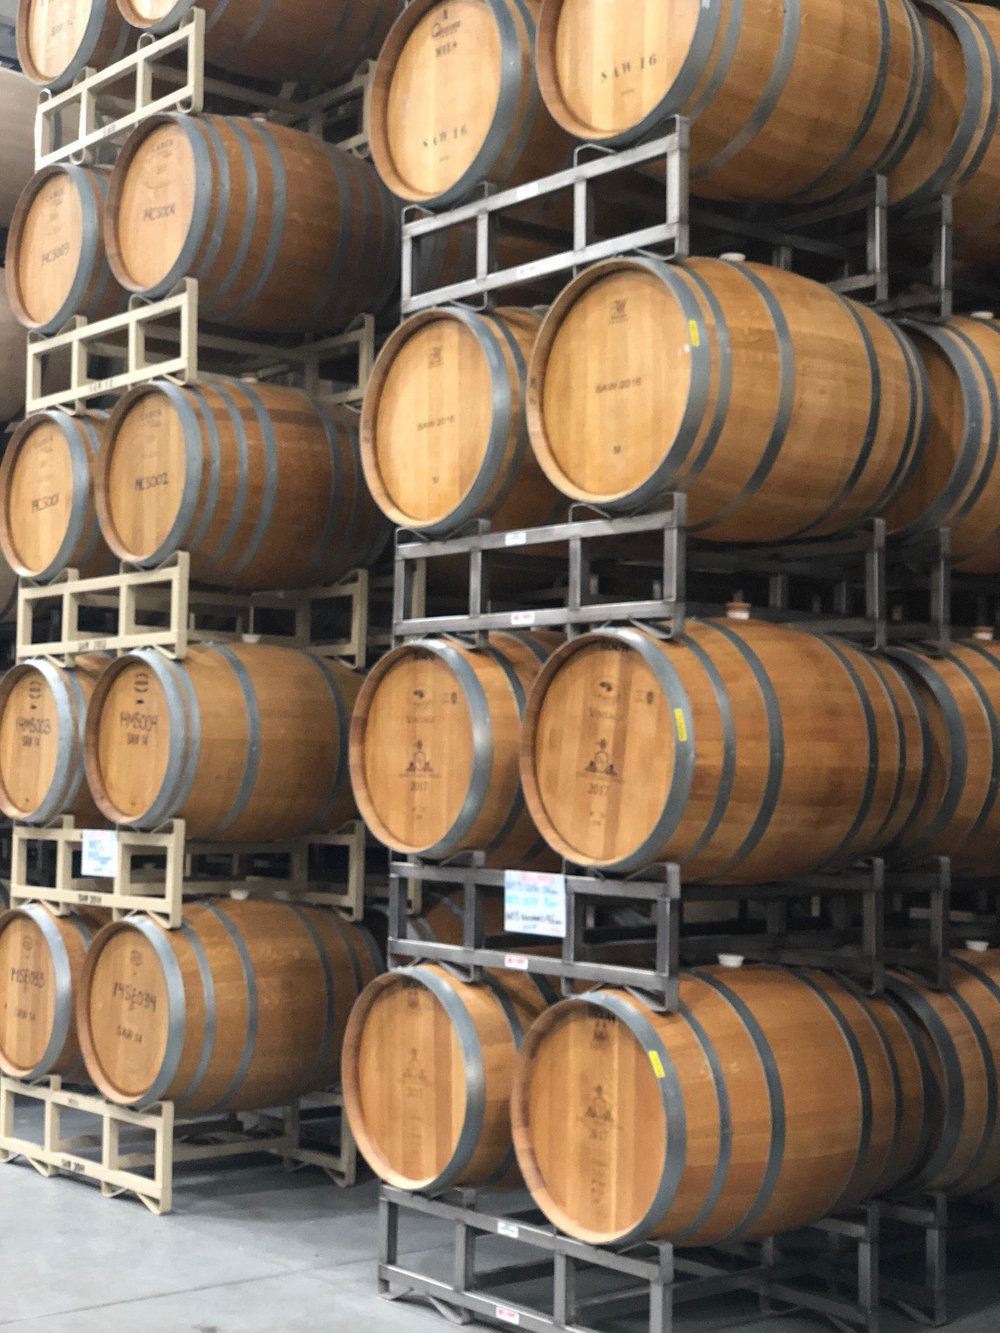 Barrels at San Antonio.jpg